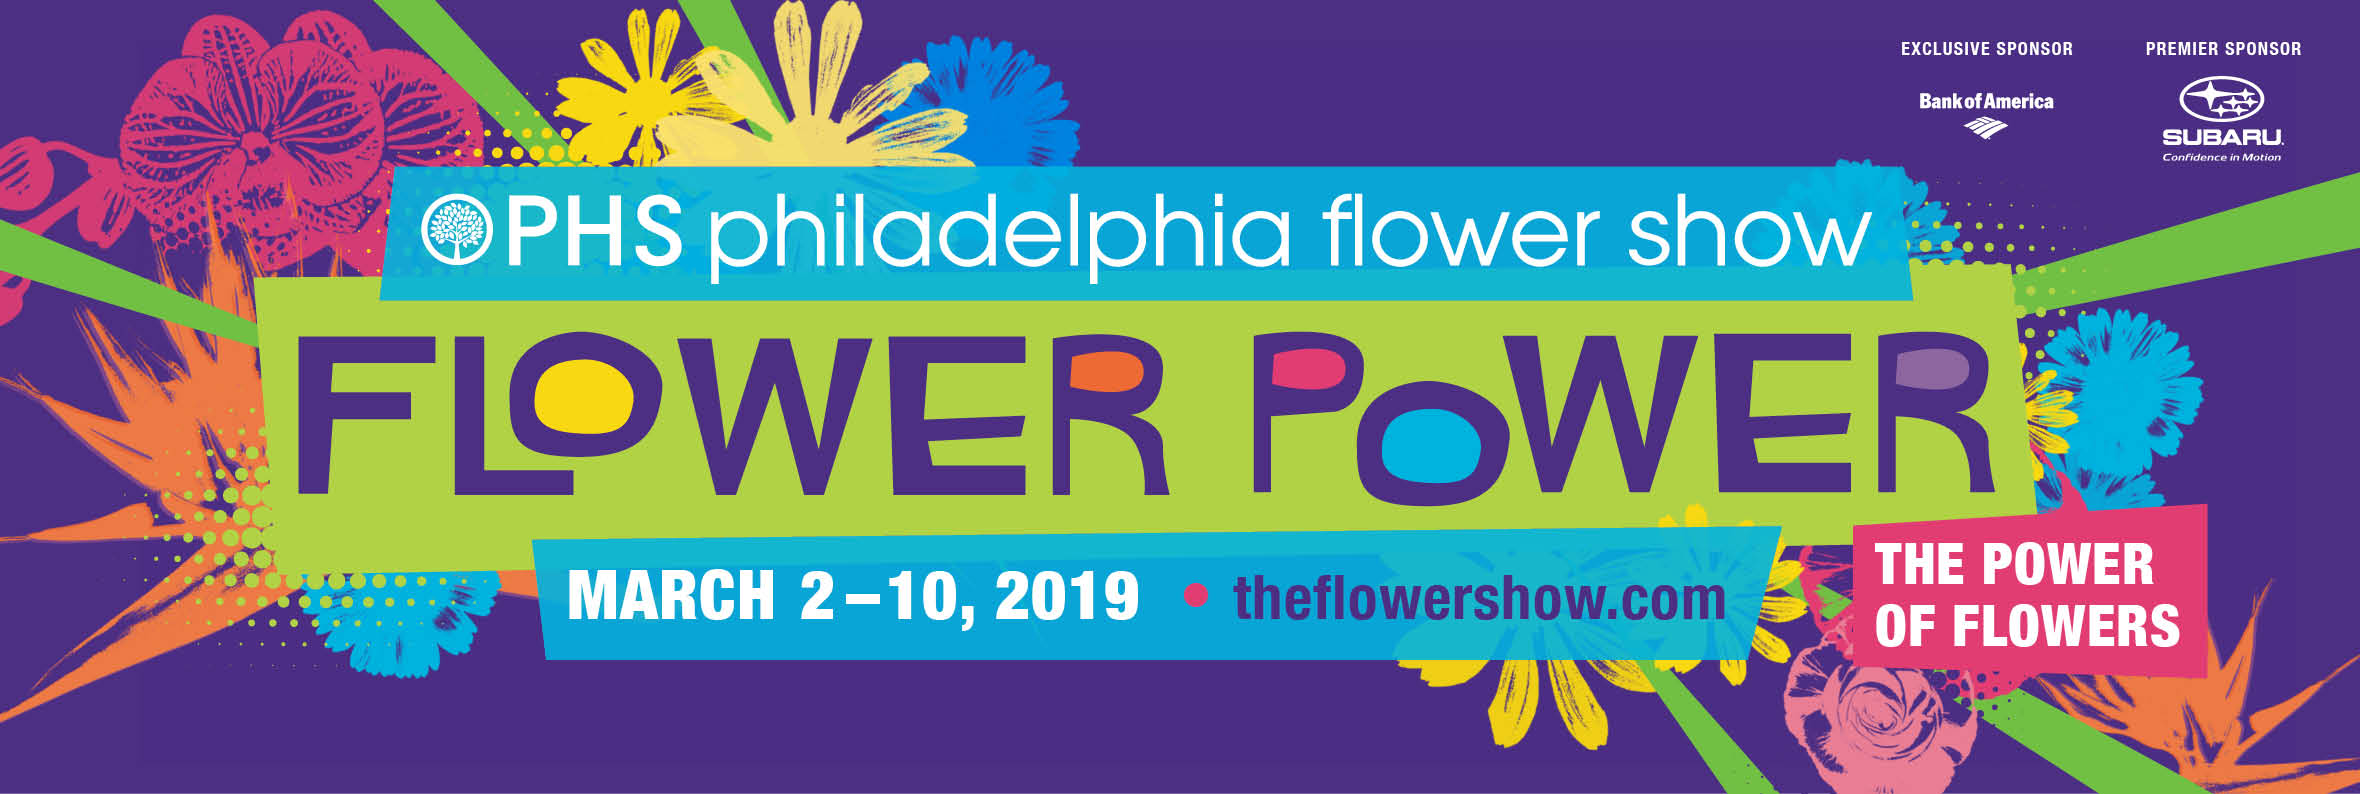 Philadelphia Flower Show Promo Codes: Up to 0% off